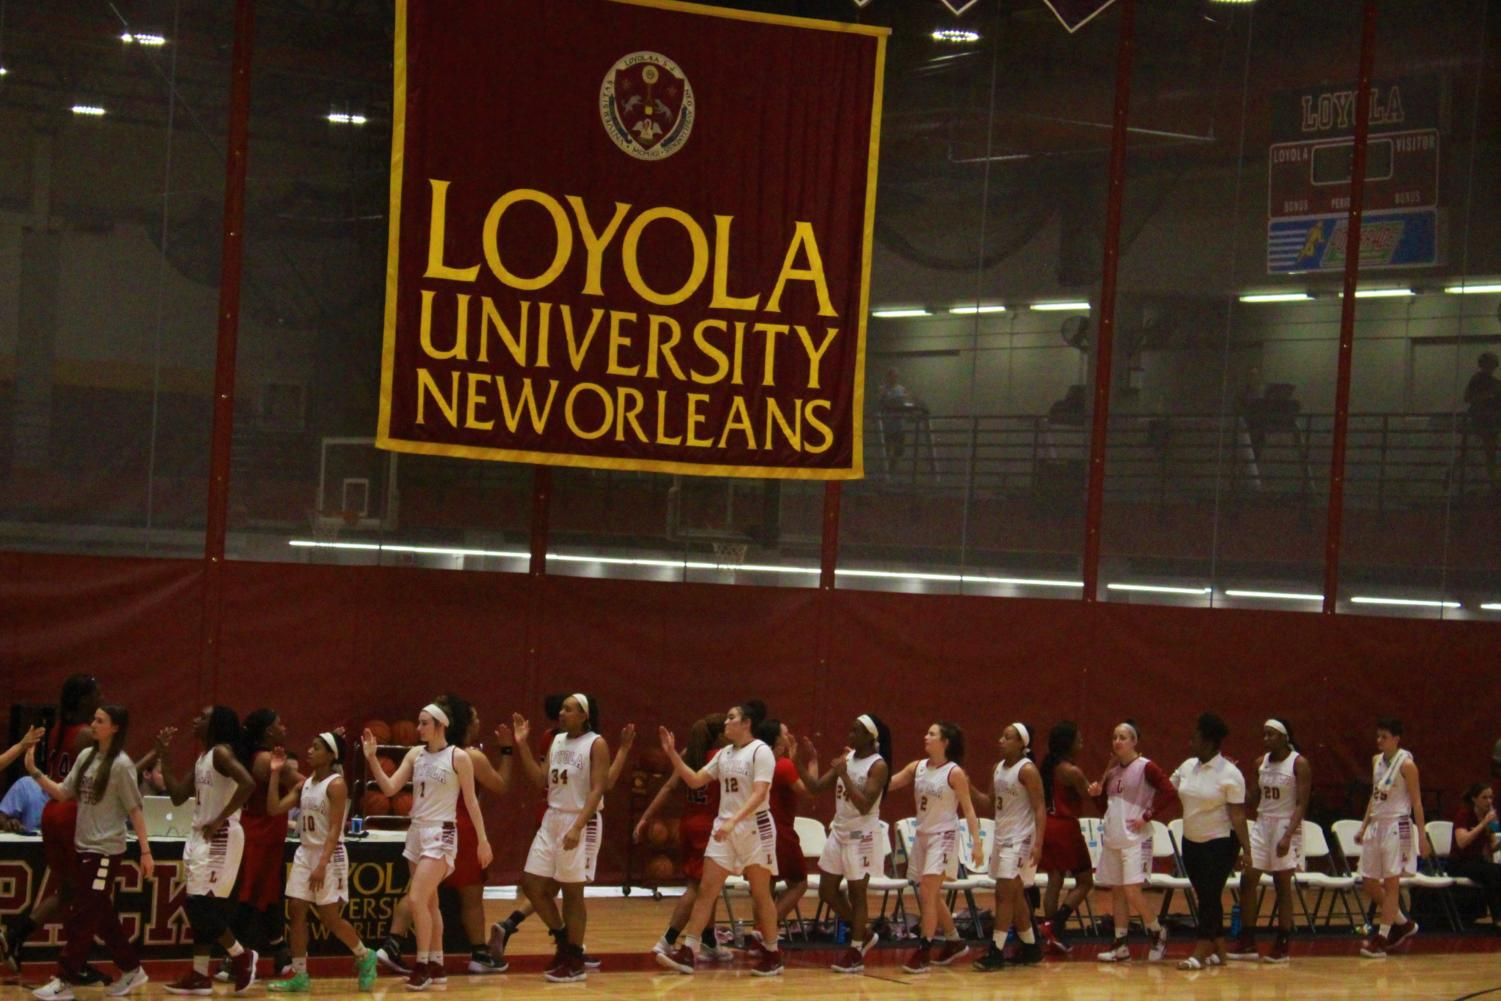 The Loyola women's basketball team celebrates their win vs. William Carey University Feb. 22 2018. The Wolf Pack beat the Crusaders 63-54. Photo credit: Andres Fuentes